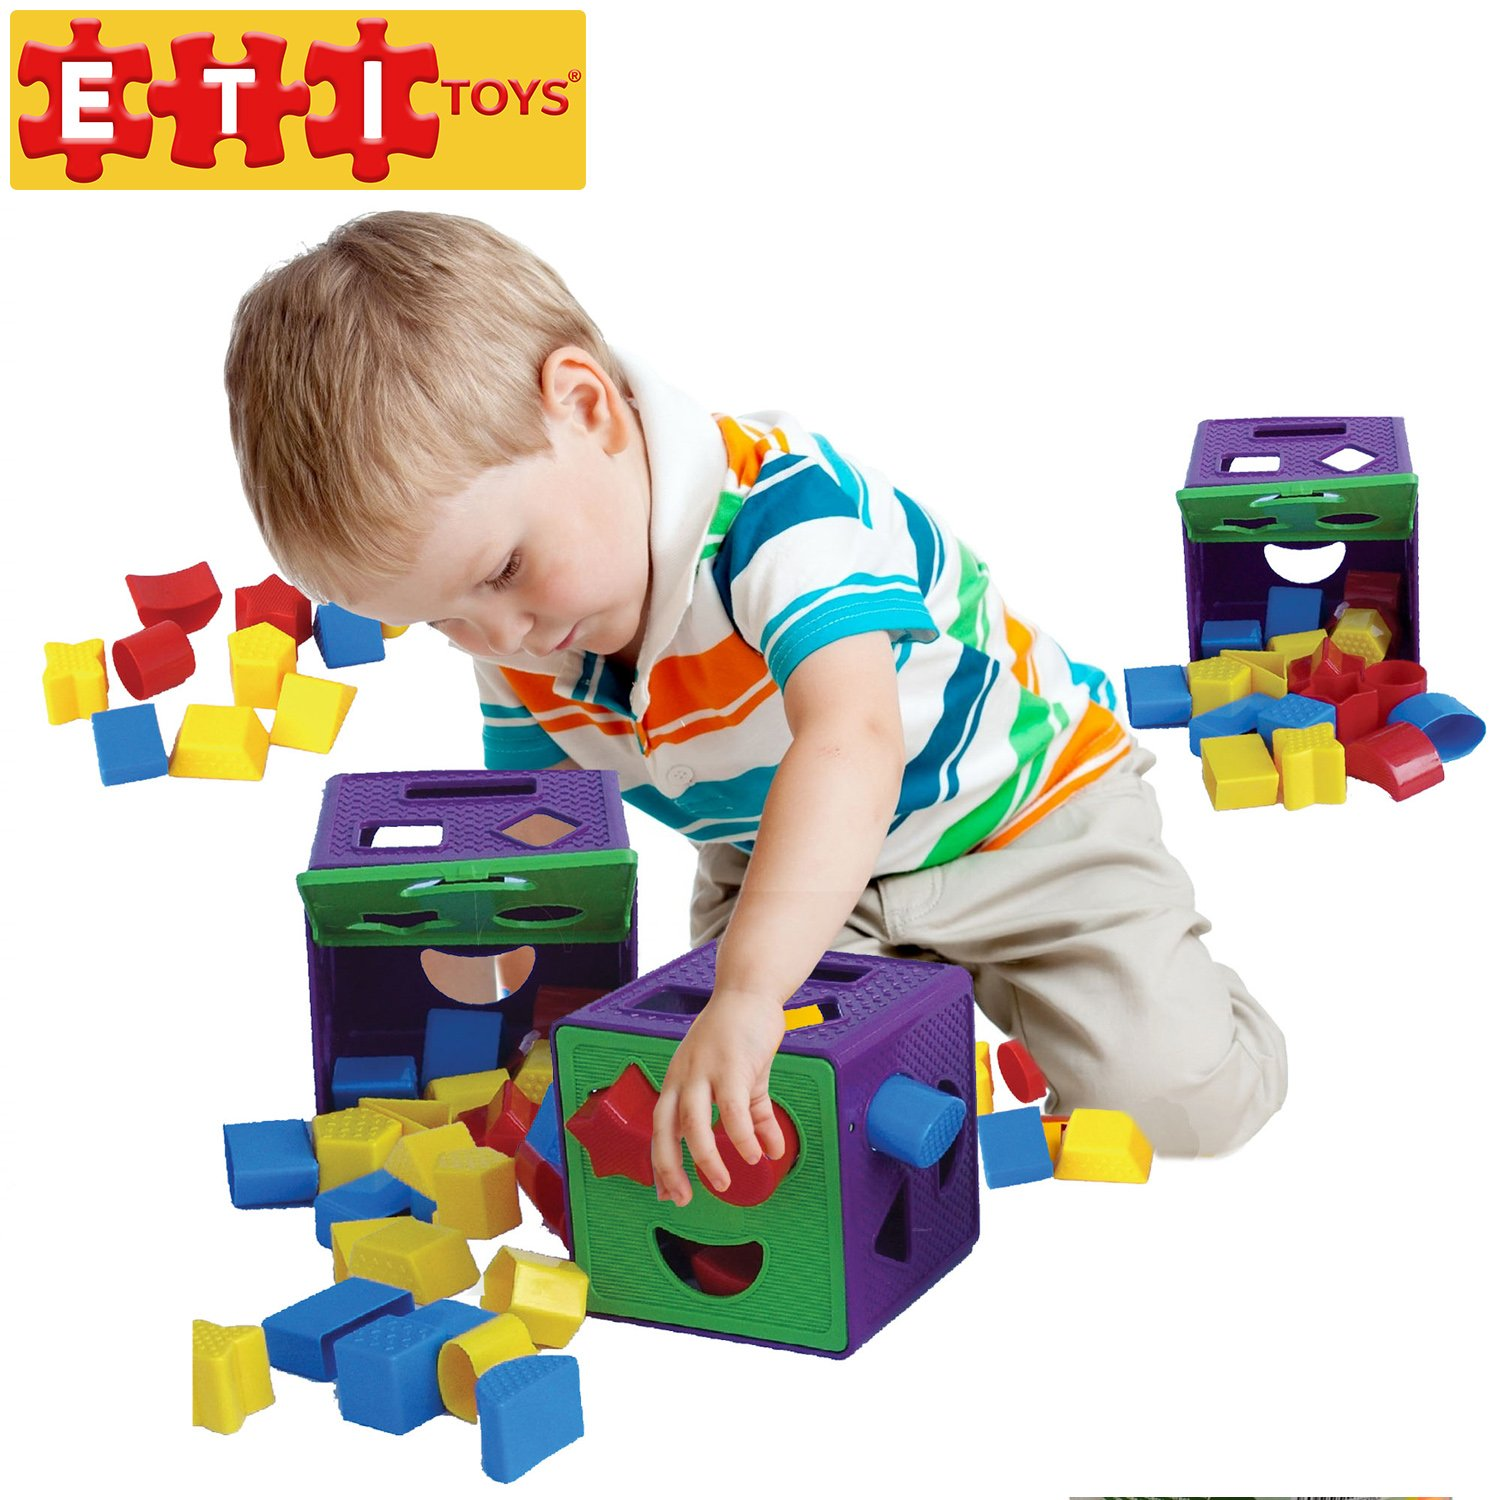 ETI Toys - 19 Piece Shape Sorter Cube with Multiple Color Shapes for Sorting